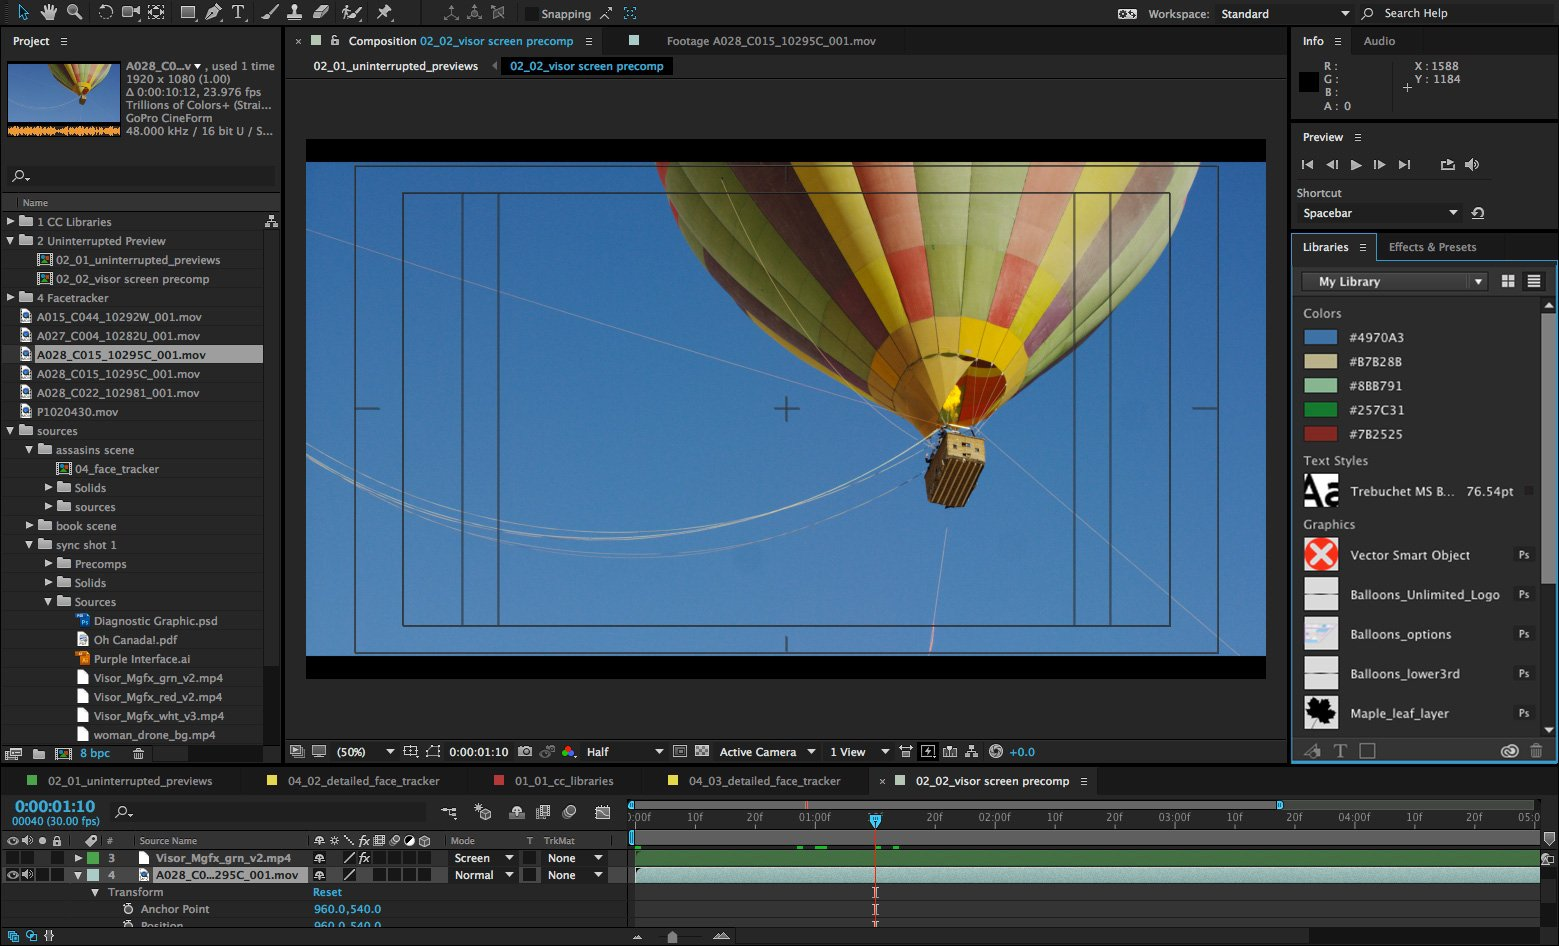 Adobe After Effects CC   portable 32/64bit download ...